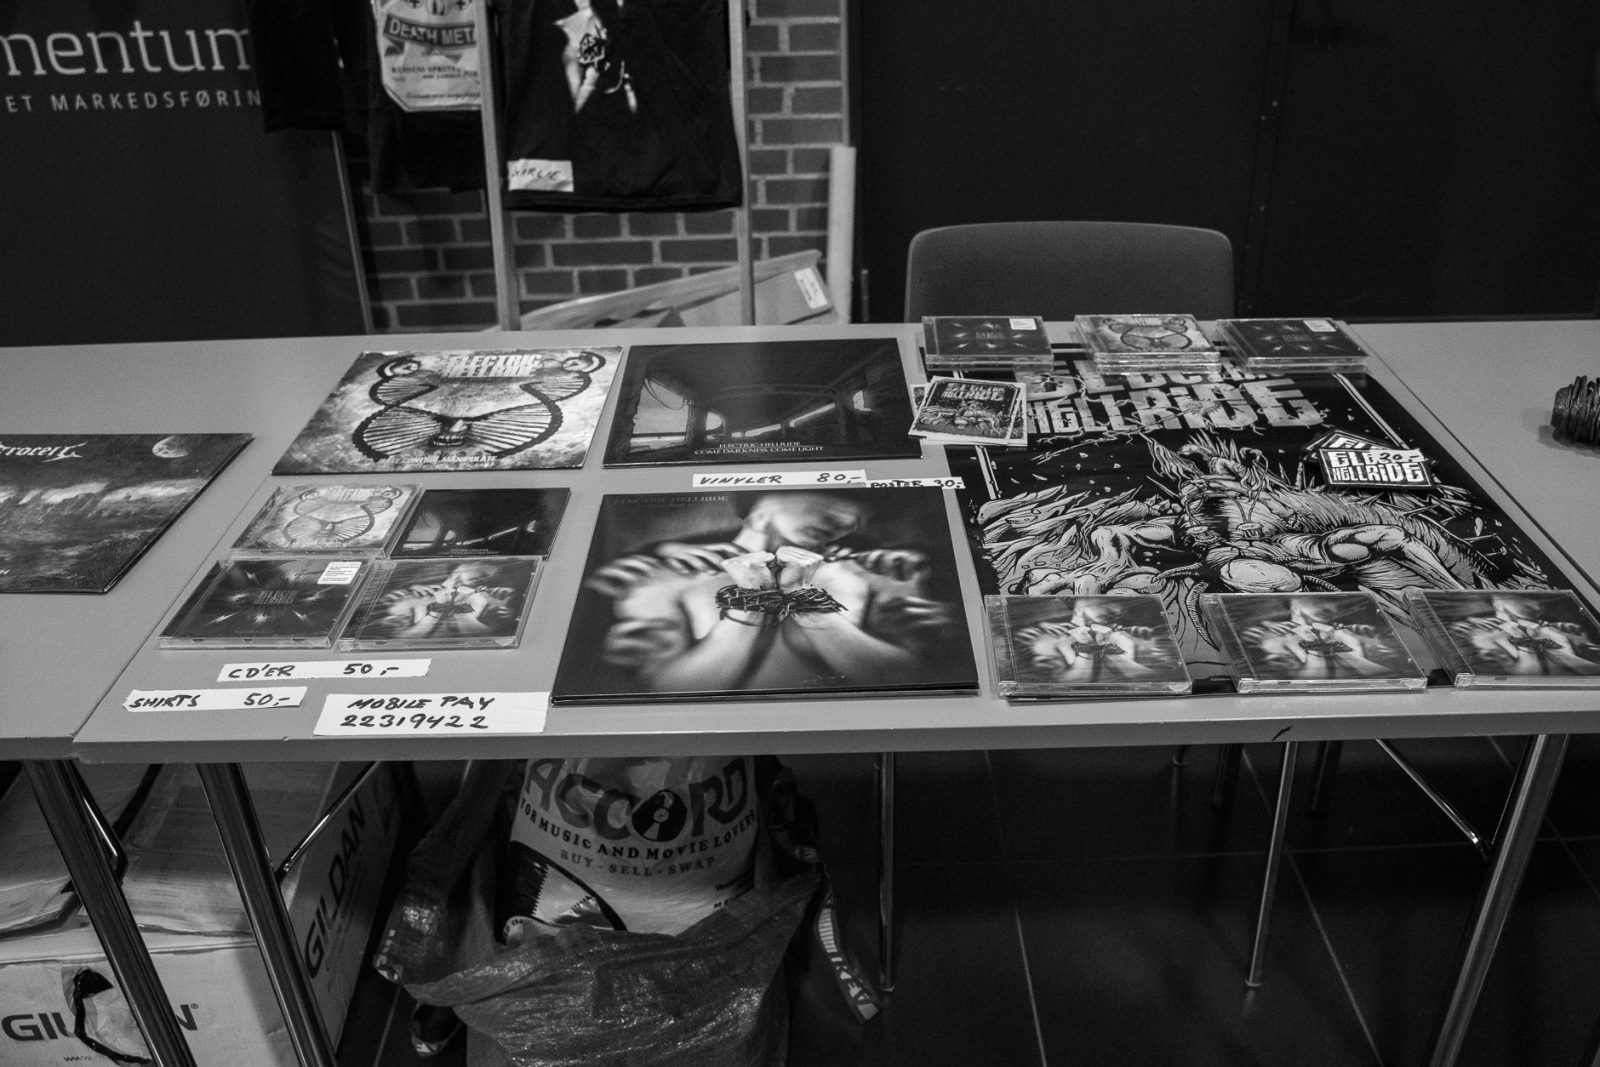 Concert Photography: Electric Hellride merchandise at Hammer Smashed Face in Frederikshavn, 2019